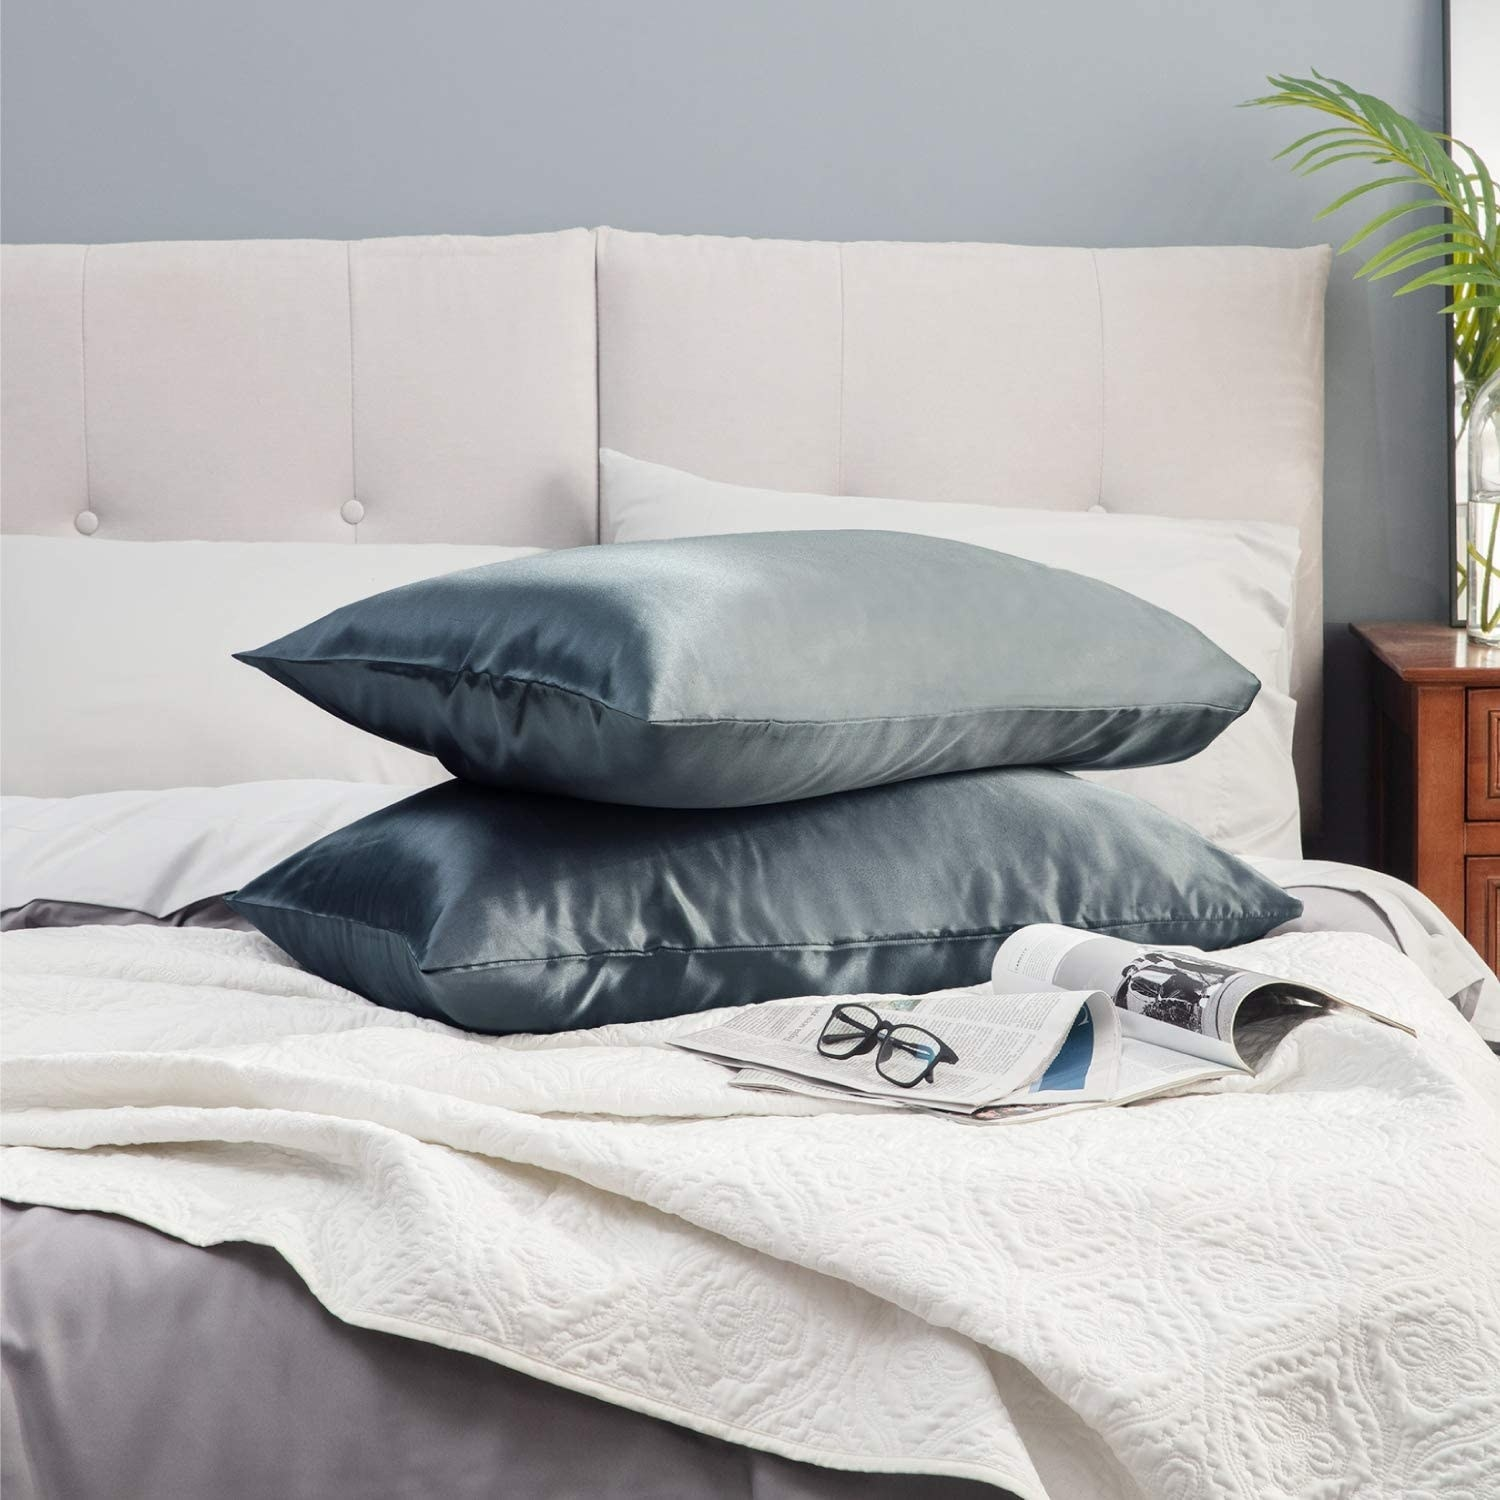 Two pillows with the cases on them stacked on a bed